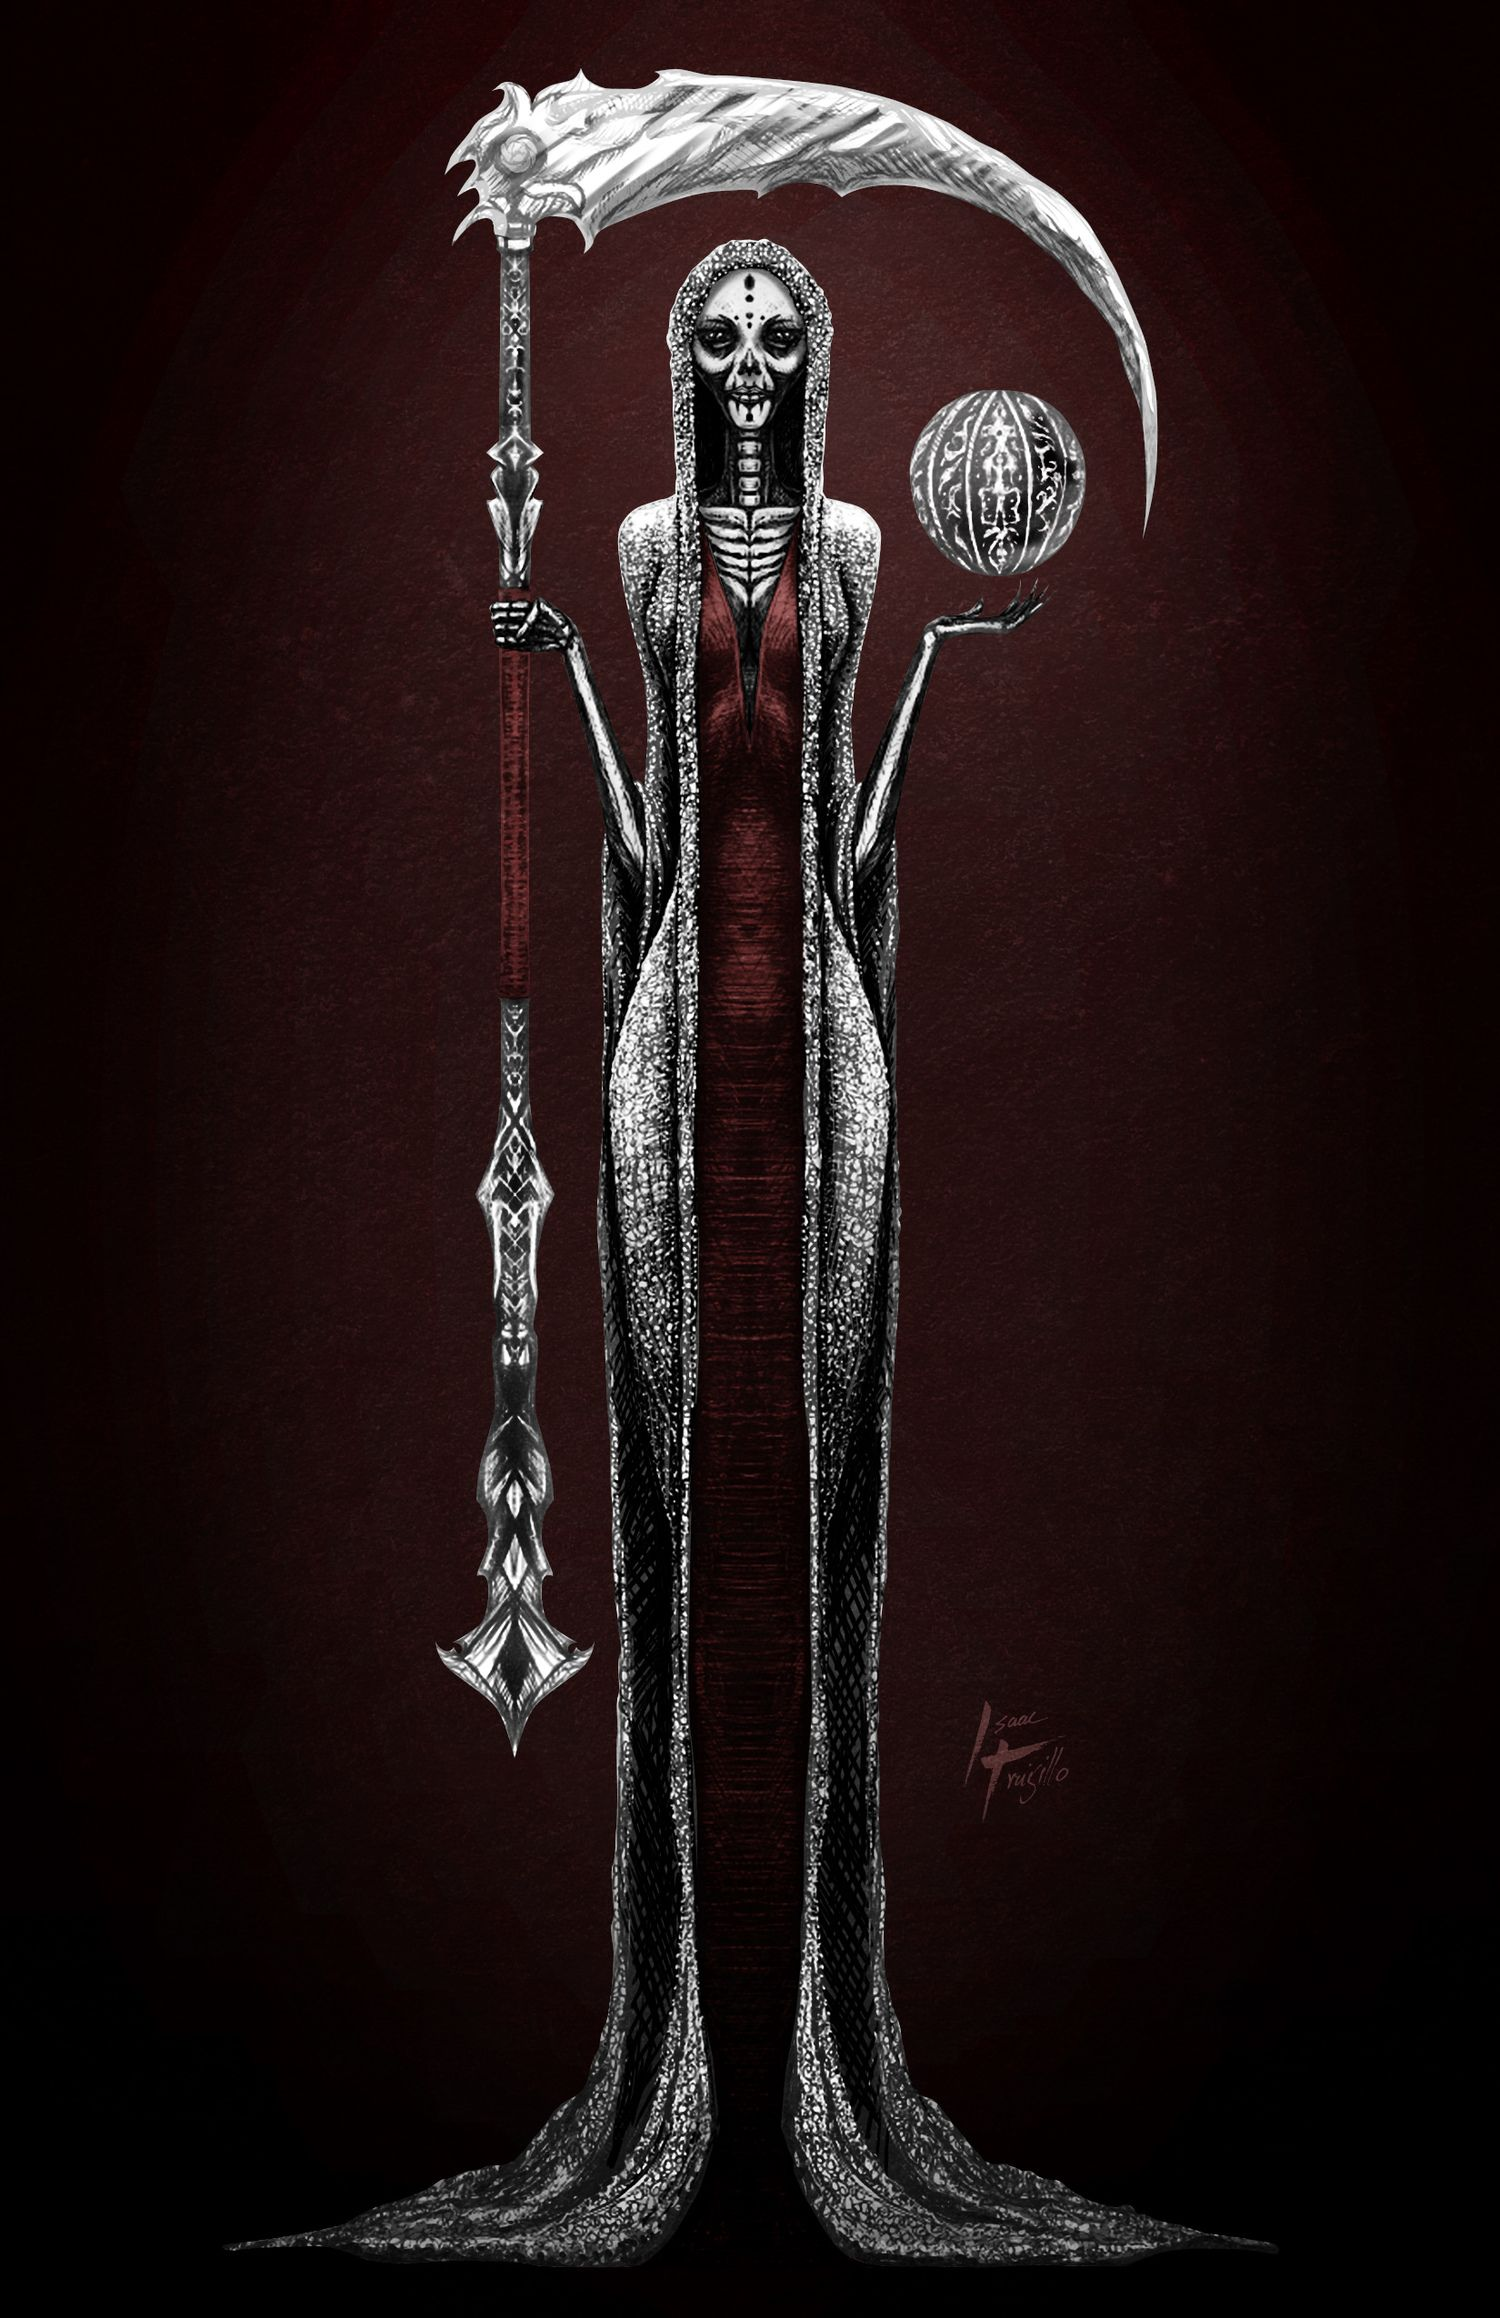 Santa Muerte By Isaac Trujillo Different And Very Elegantly Done